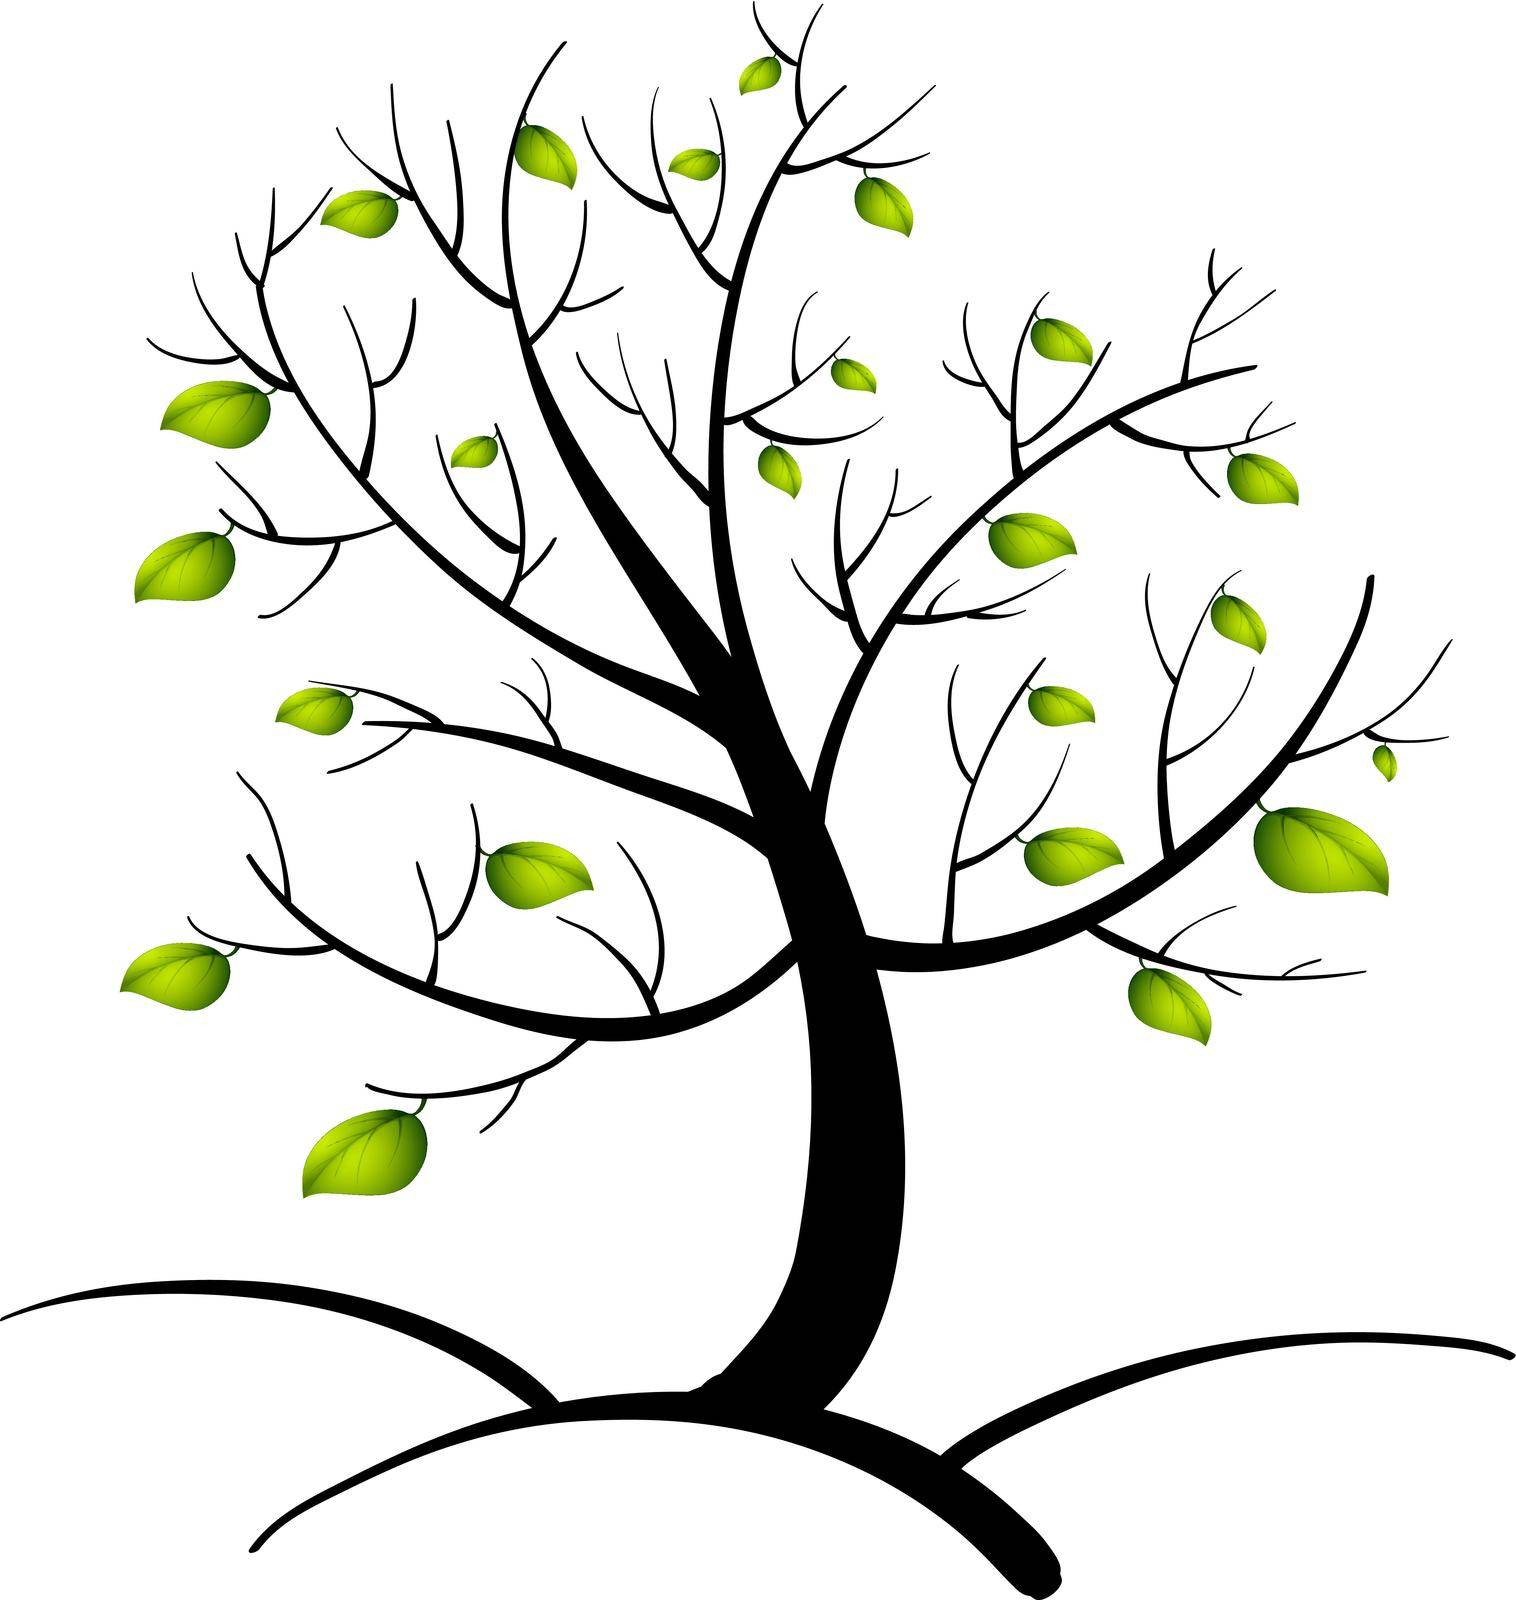 illustration, isolated, clipping path, tree, fall, spring - D37177942